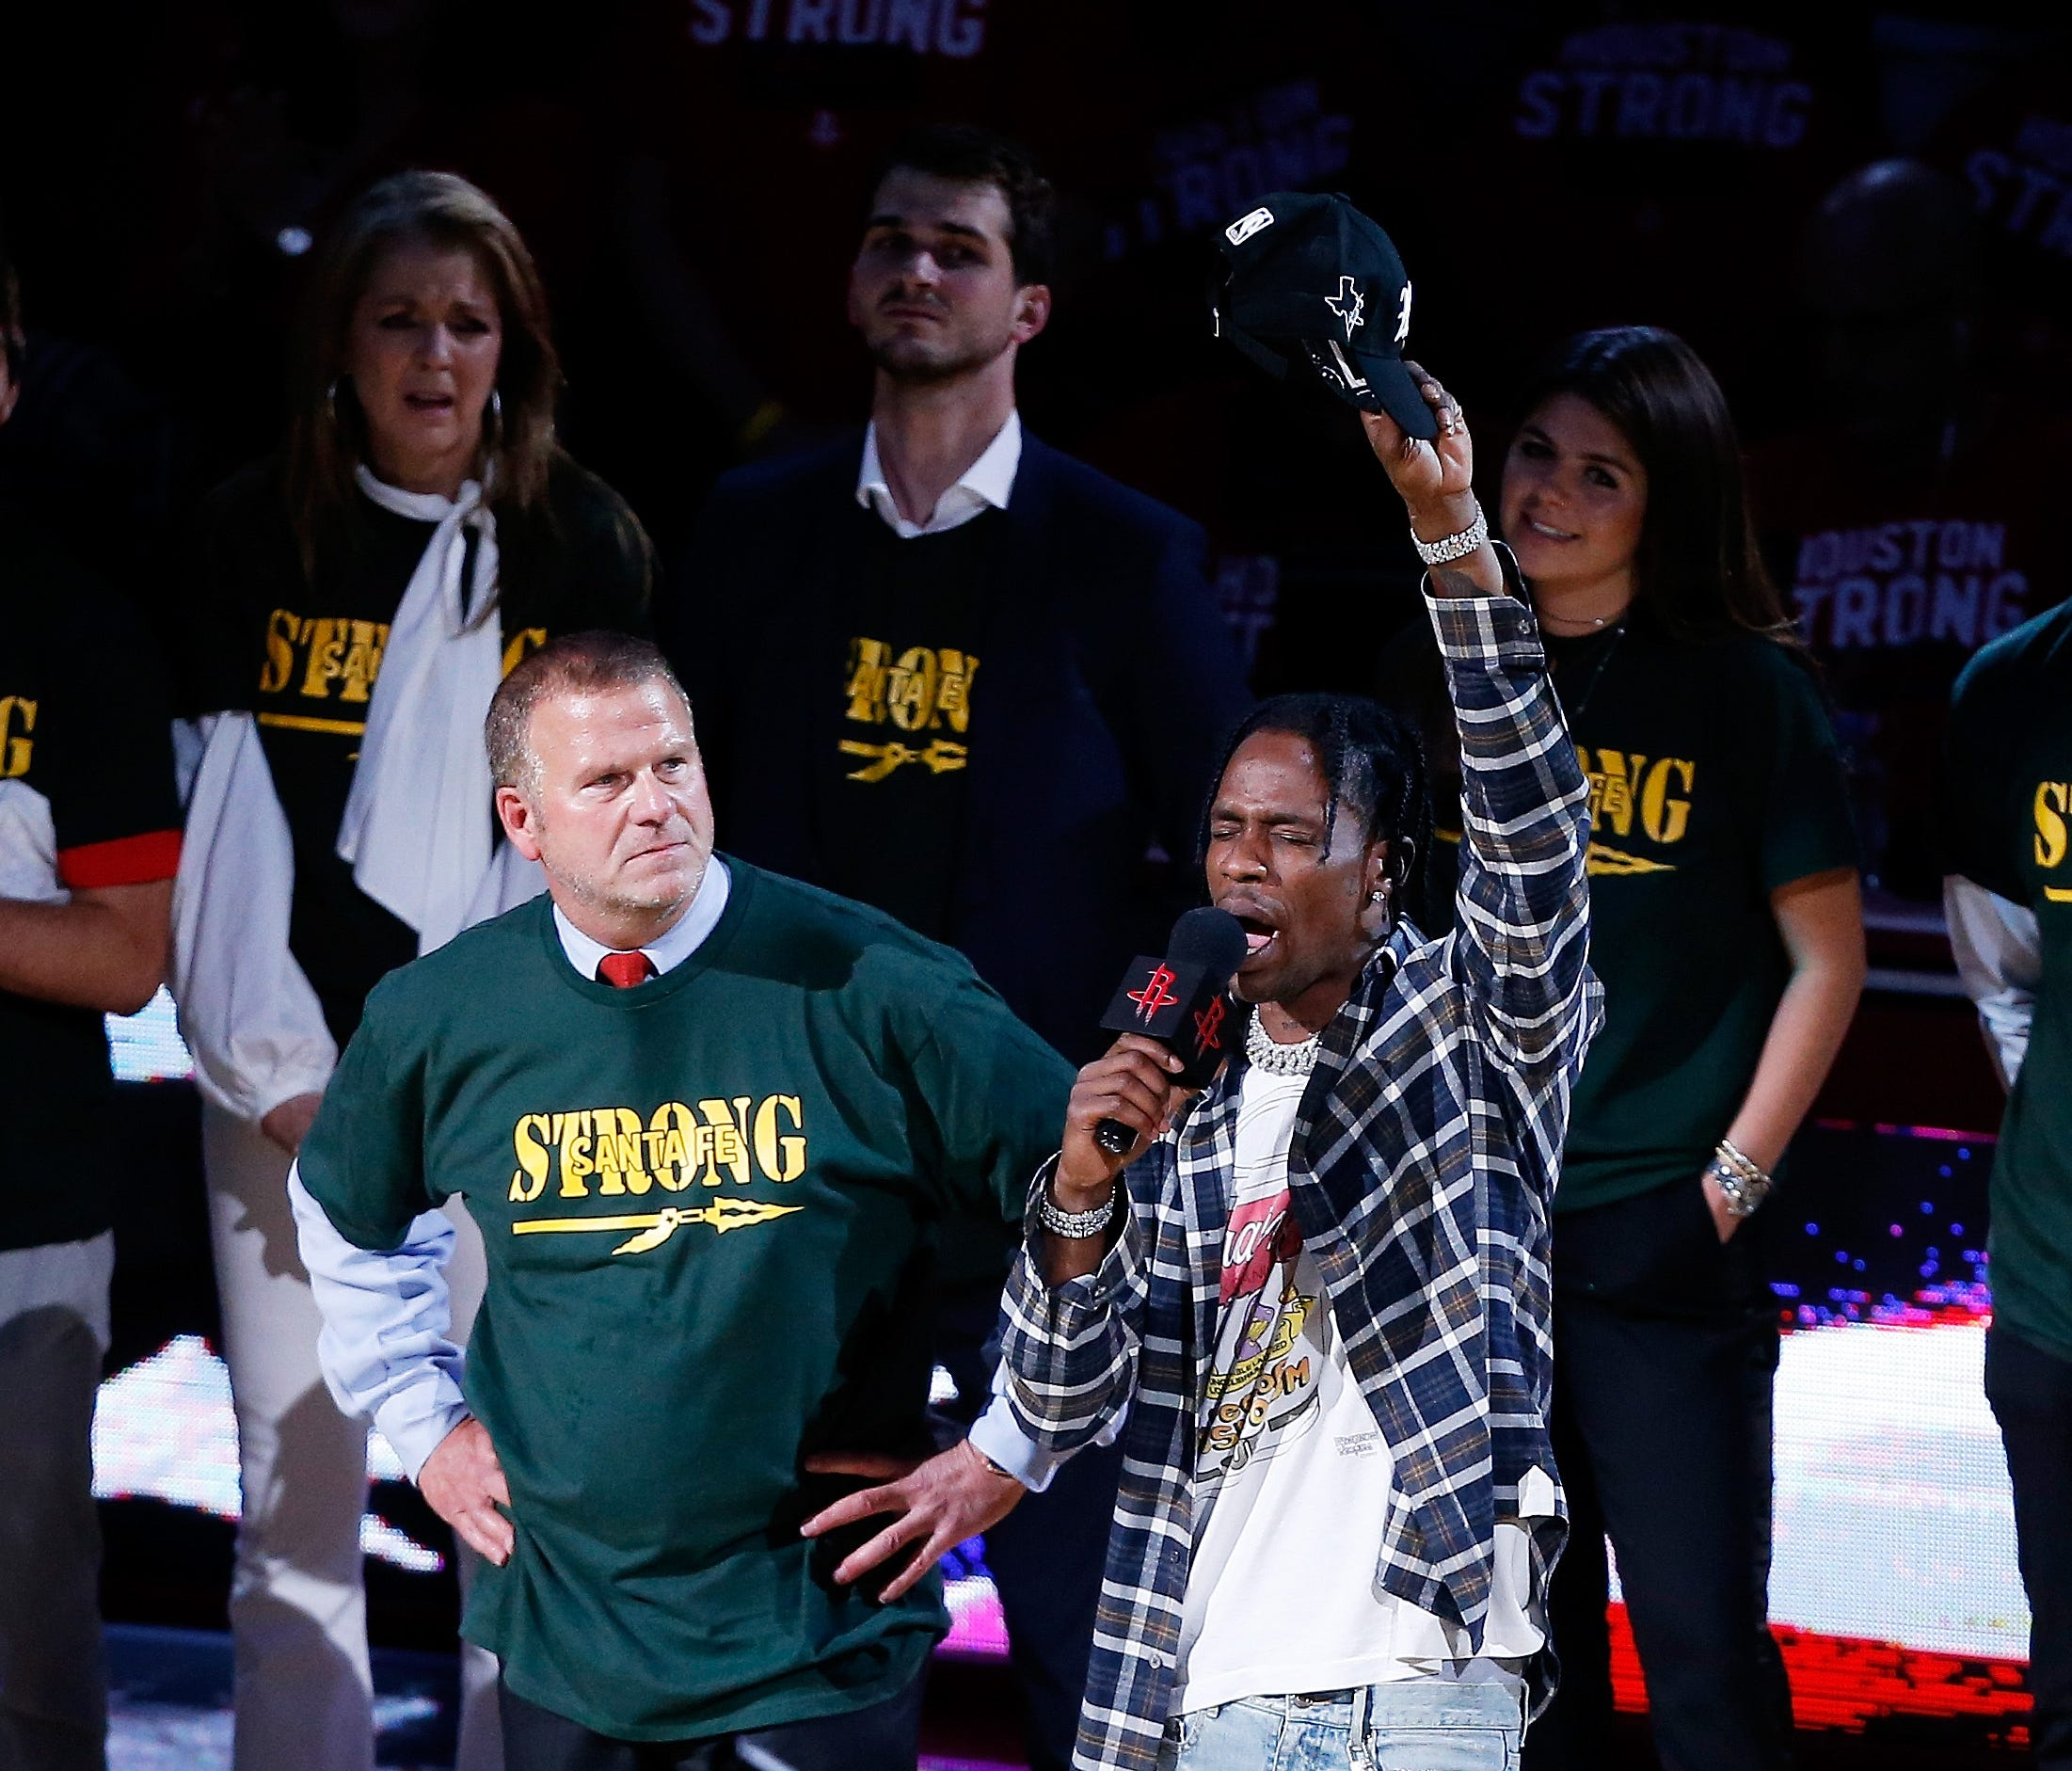 Houston Rockets pwner Tilman Fertitta and rapper Travis Scott speak as part of a tribute to honor the victims of the May 18th shooting at Santa Fe High School.